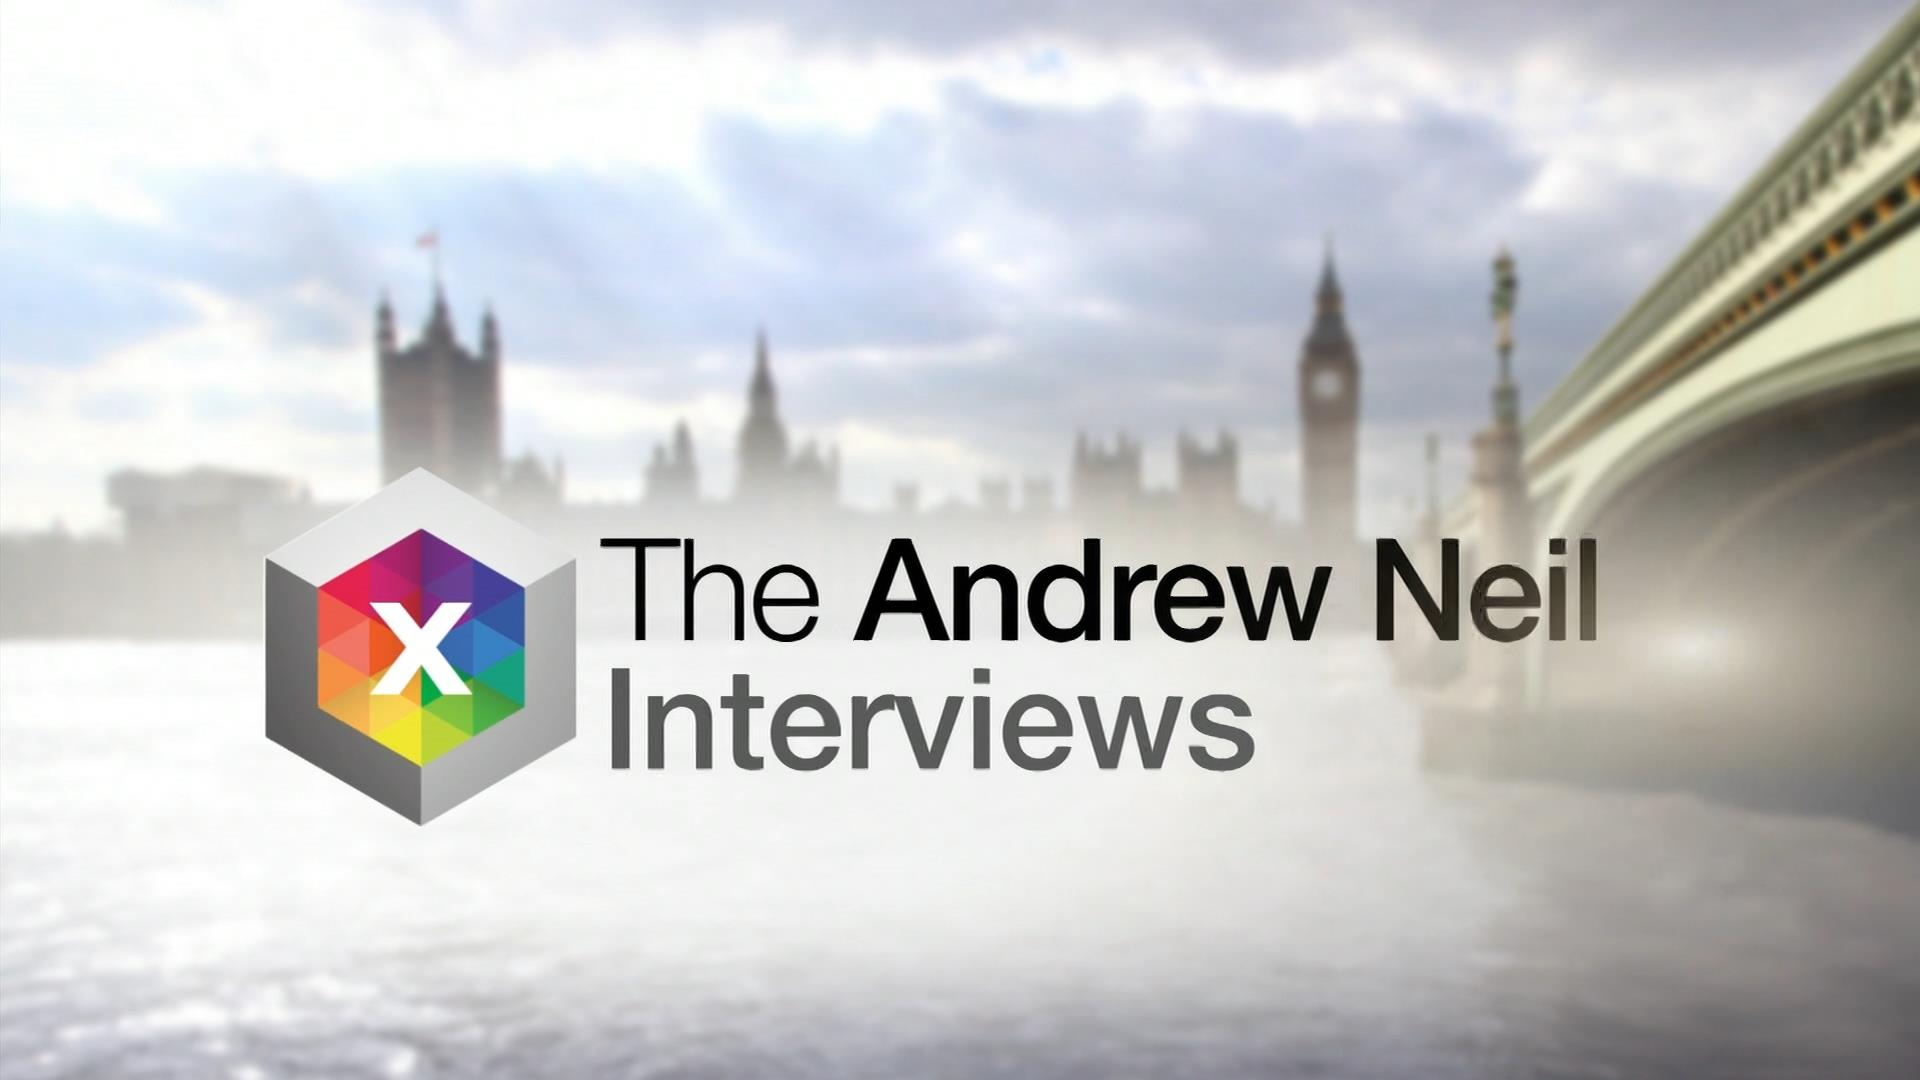 The Andrew Neil Interviews - Presentation (9)